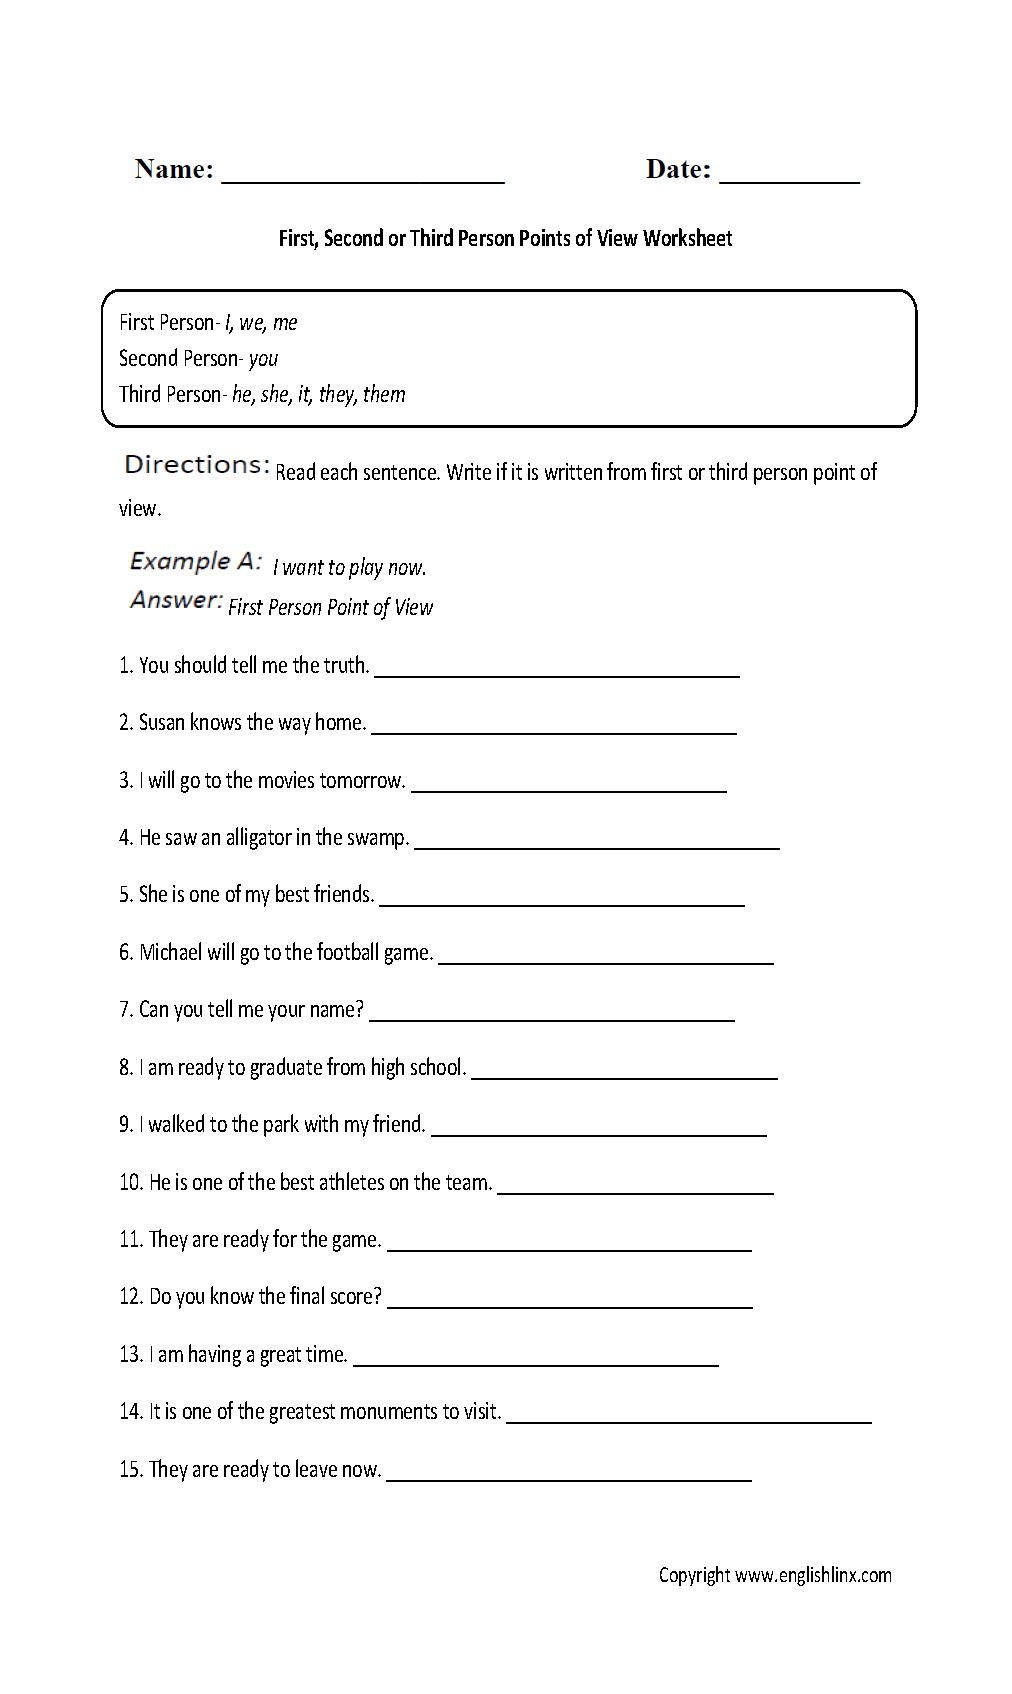 Proatmealus  Prepossessing Englishlinxcom  Point Of View Worksheets With Lovely Point Of View Worksheet With Amusing Finding The Mean Worksheets Also Recursive Sequences Worksheet In Addition Adding Integers Word Problems Worksheet And Adverb Worksheets Rd Grade As Well As  Multiplication Worksheet Additionally Letter Worksheets For Preschoolers From Englishlinxcom With Proatmealus  Lovely Englishlinxcom  Point Of View Worksheets With Amusing Point Of View Worksheet And Prepossessing Finding The Mean Worksheets Also Recursive Sequences Worksheet In Addition Adding Integers Word Problems Worksheet From Englishlinxcom